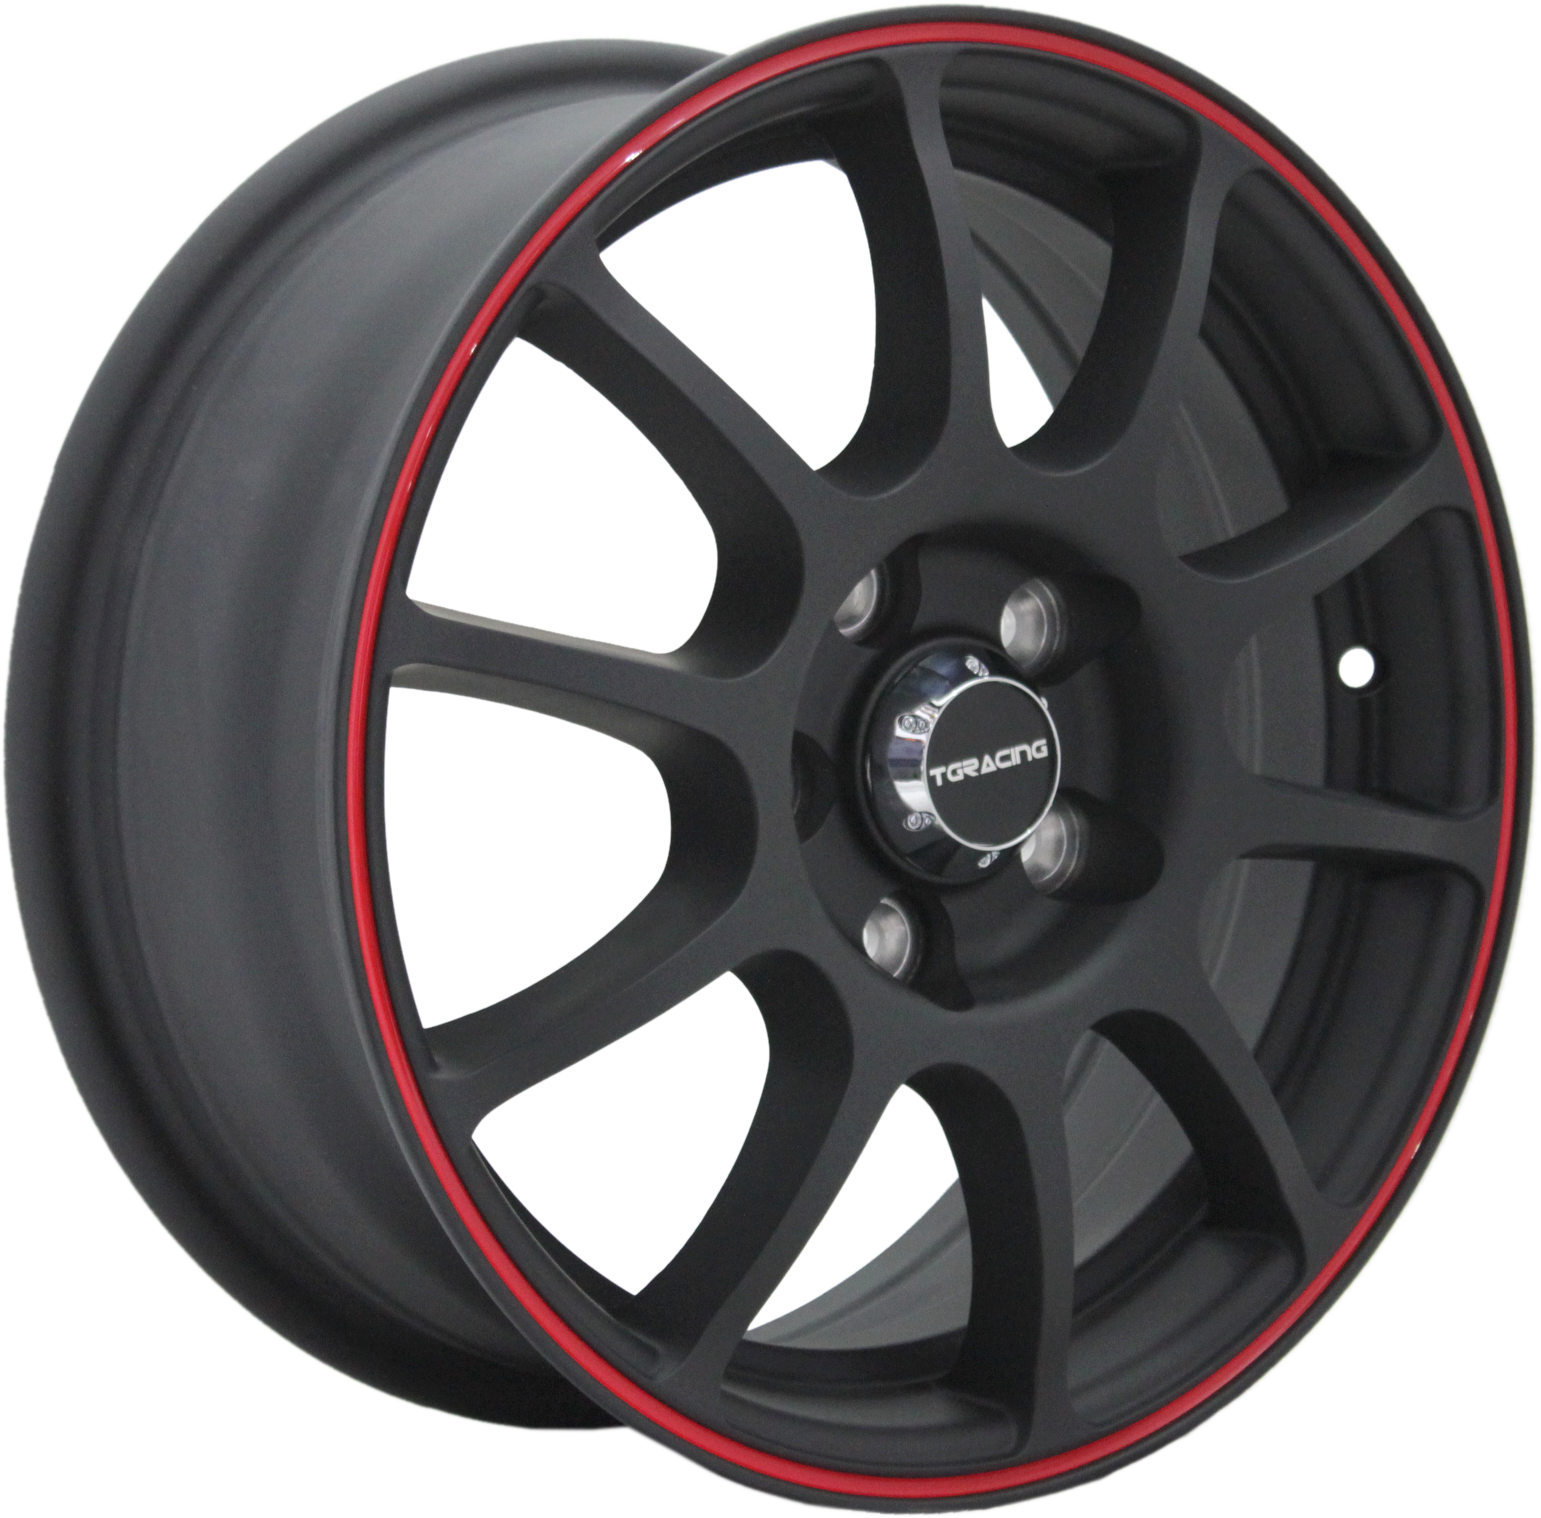 литые диски TGRACING TGR001 6x15/5x105 ET39 D56.5 MATT_BLACK_RED_RING